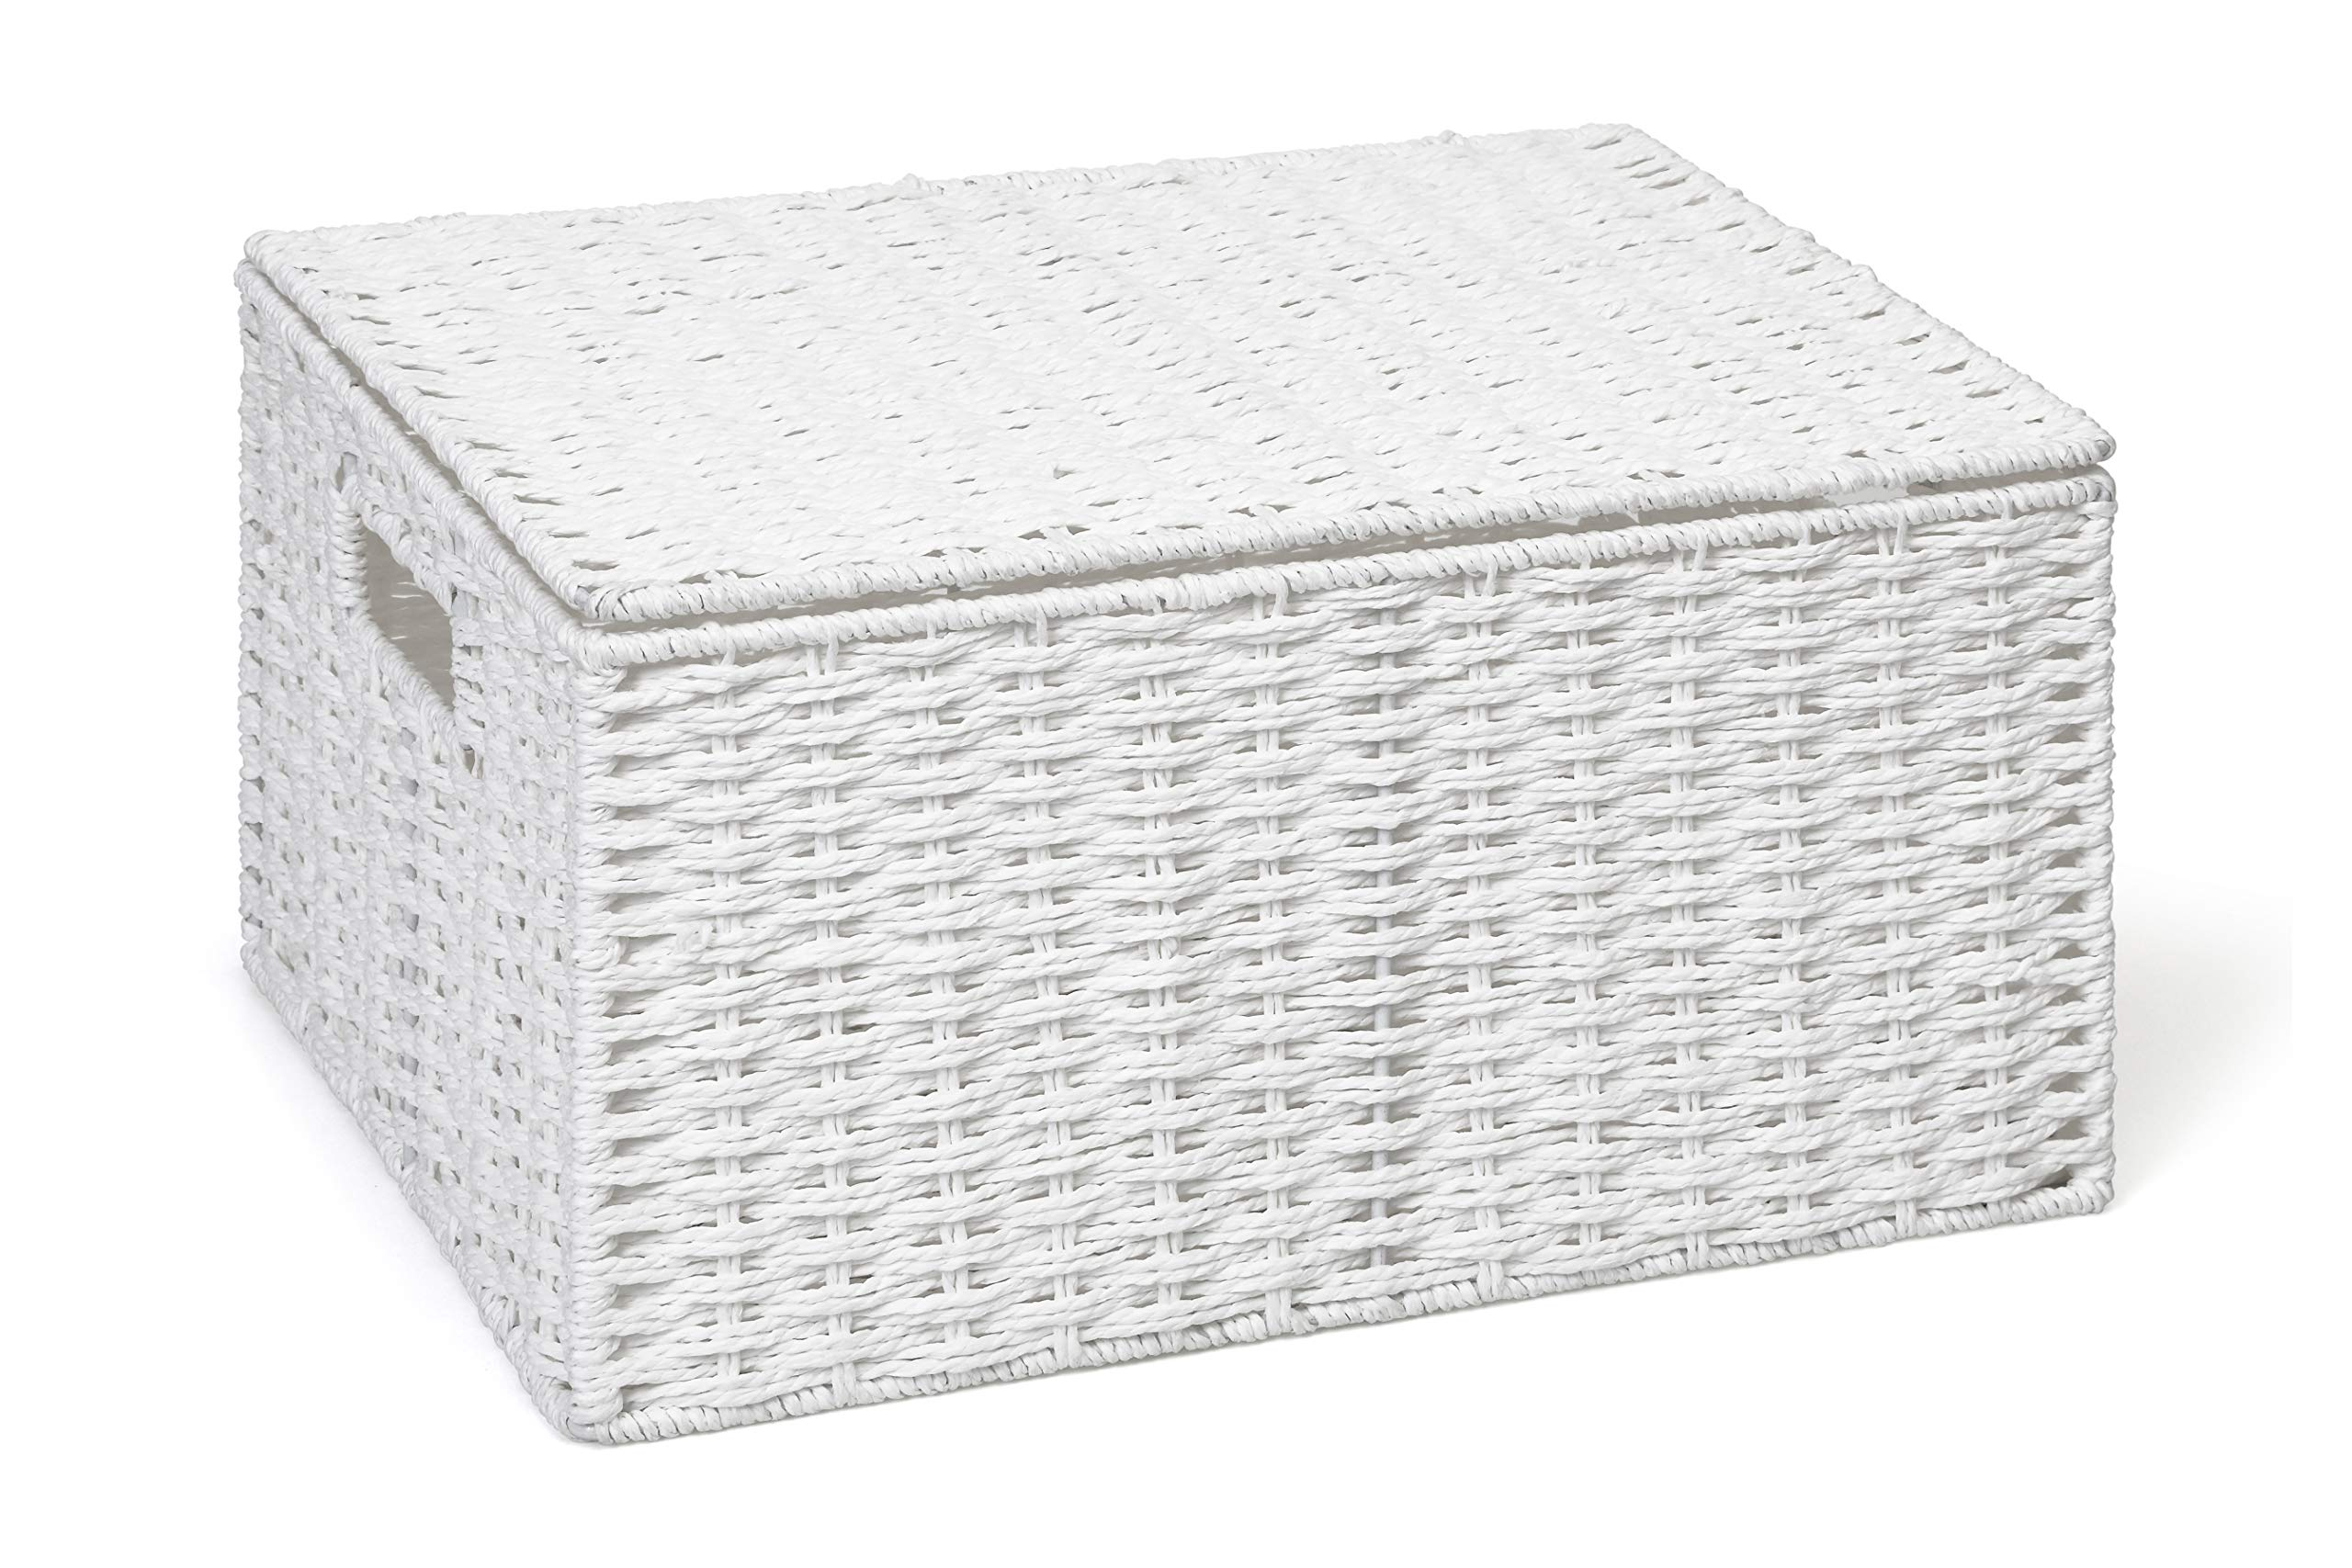 Arpan Small Resin Woven Storage Basket Box With Lid /& Lock Black